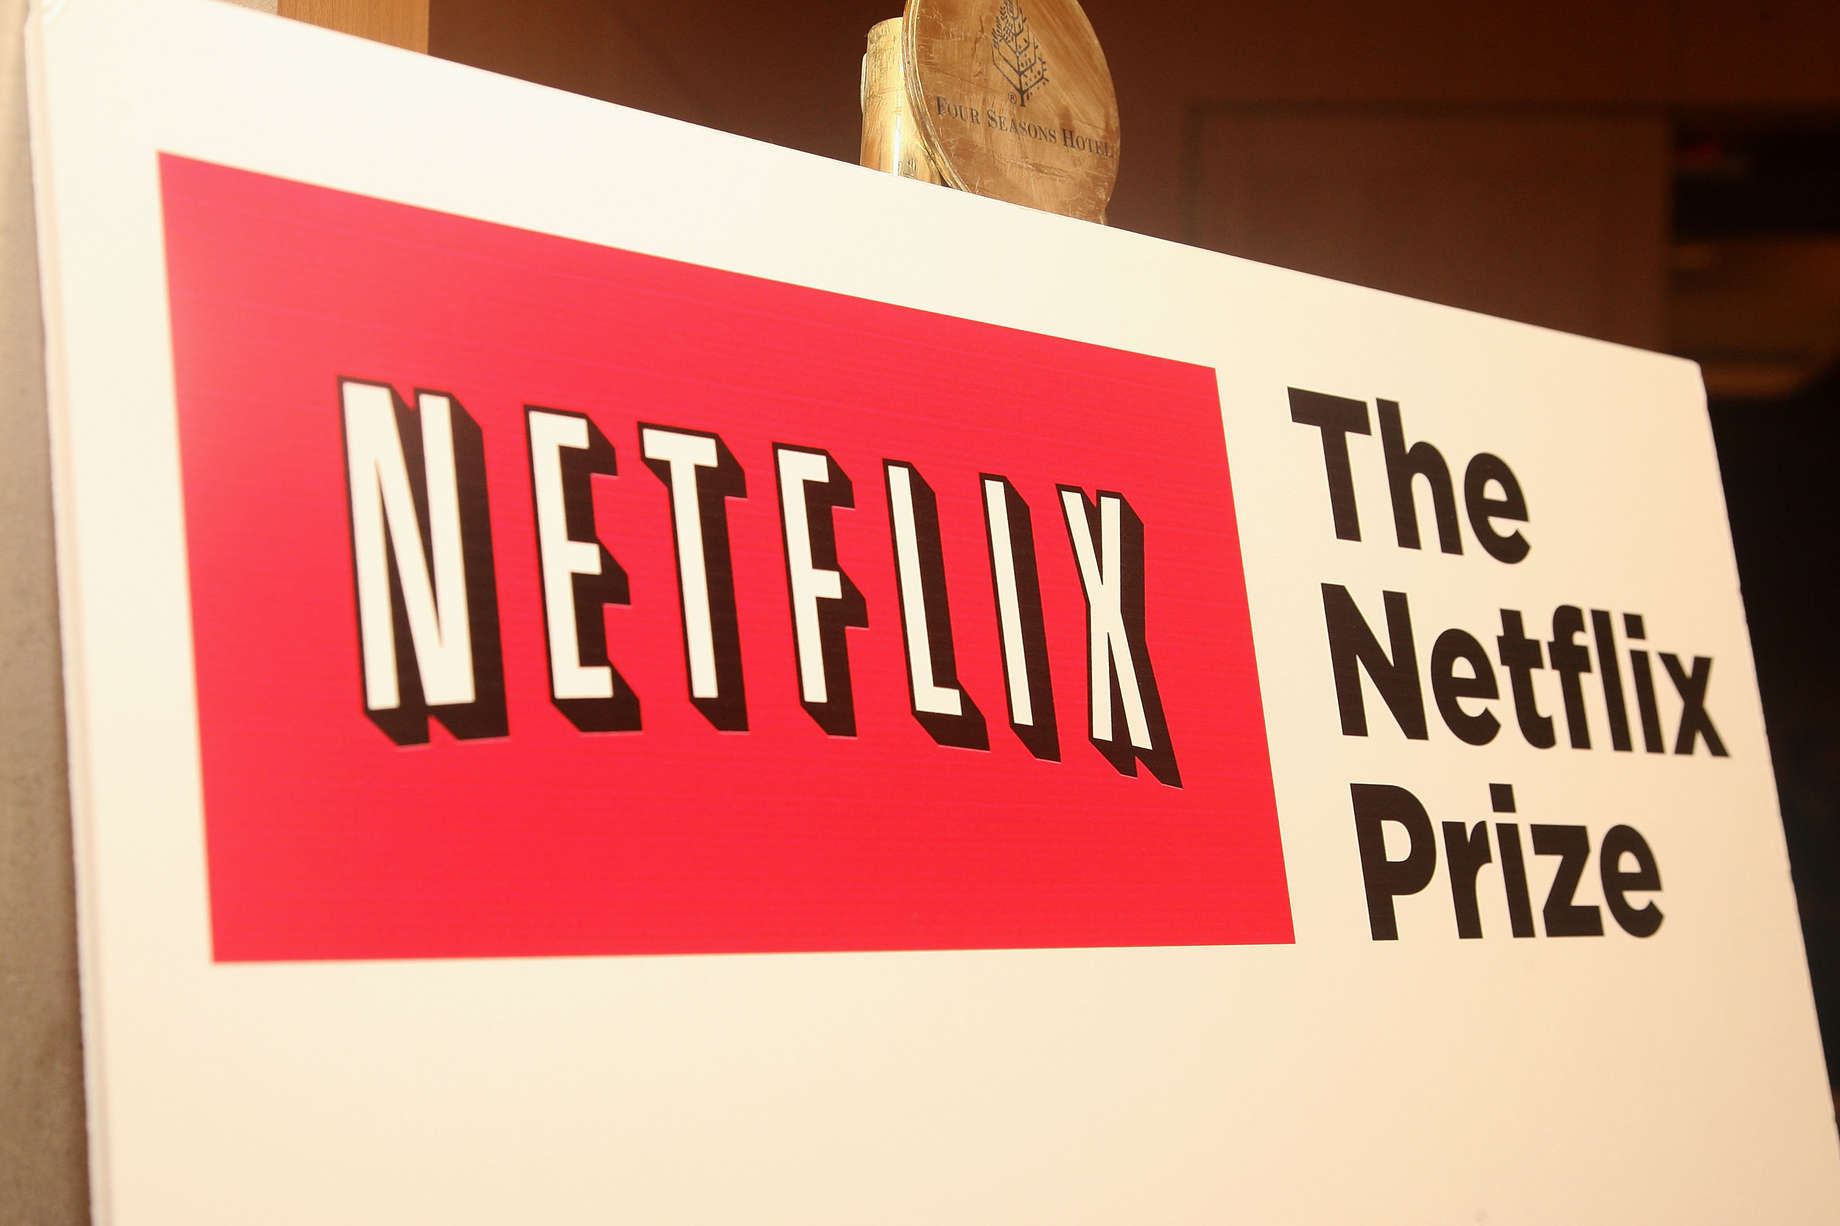 The Netflix Prize: How a $1 Million Coding Contest Changed Streaming